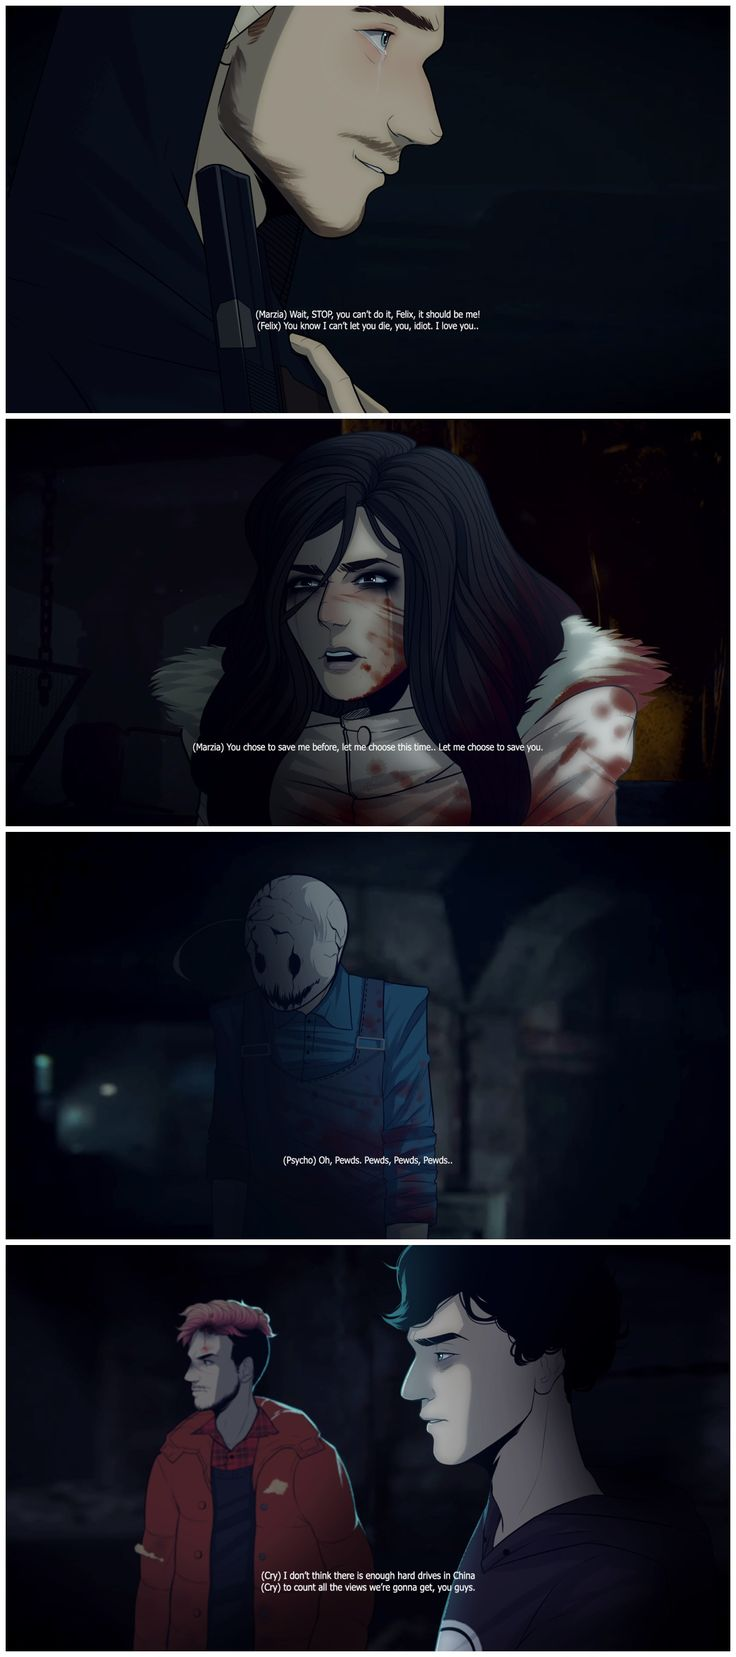 Until Dawn - Pewdiepie, CutipieMarzia, Cryaotic, Markiplier, and KickthePj #AU #game #blood